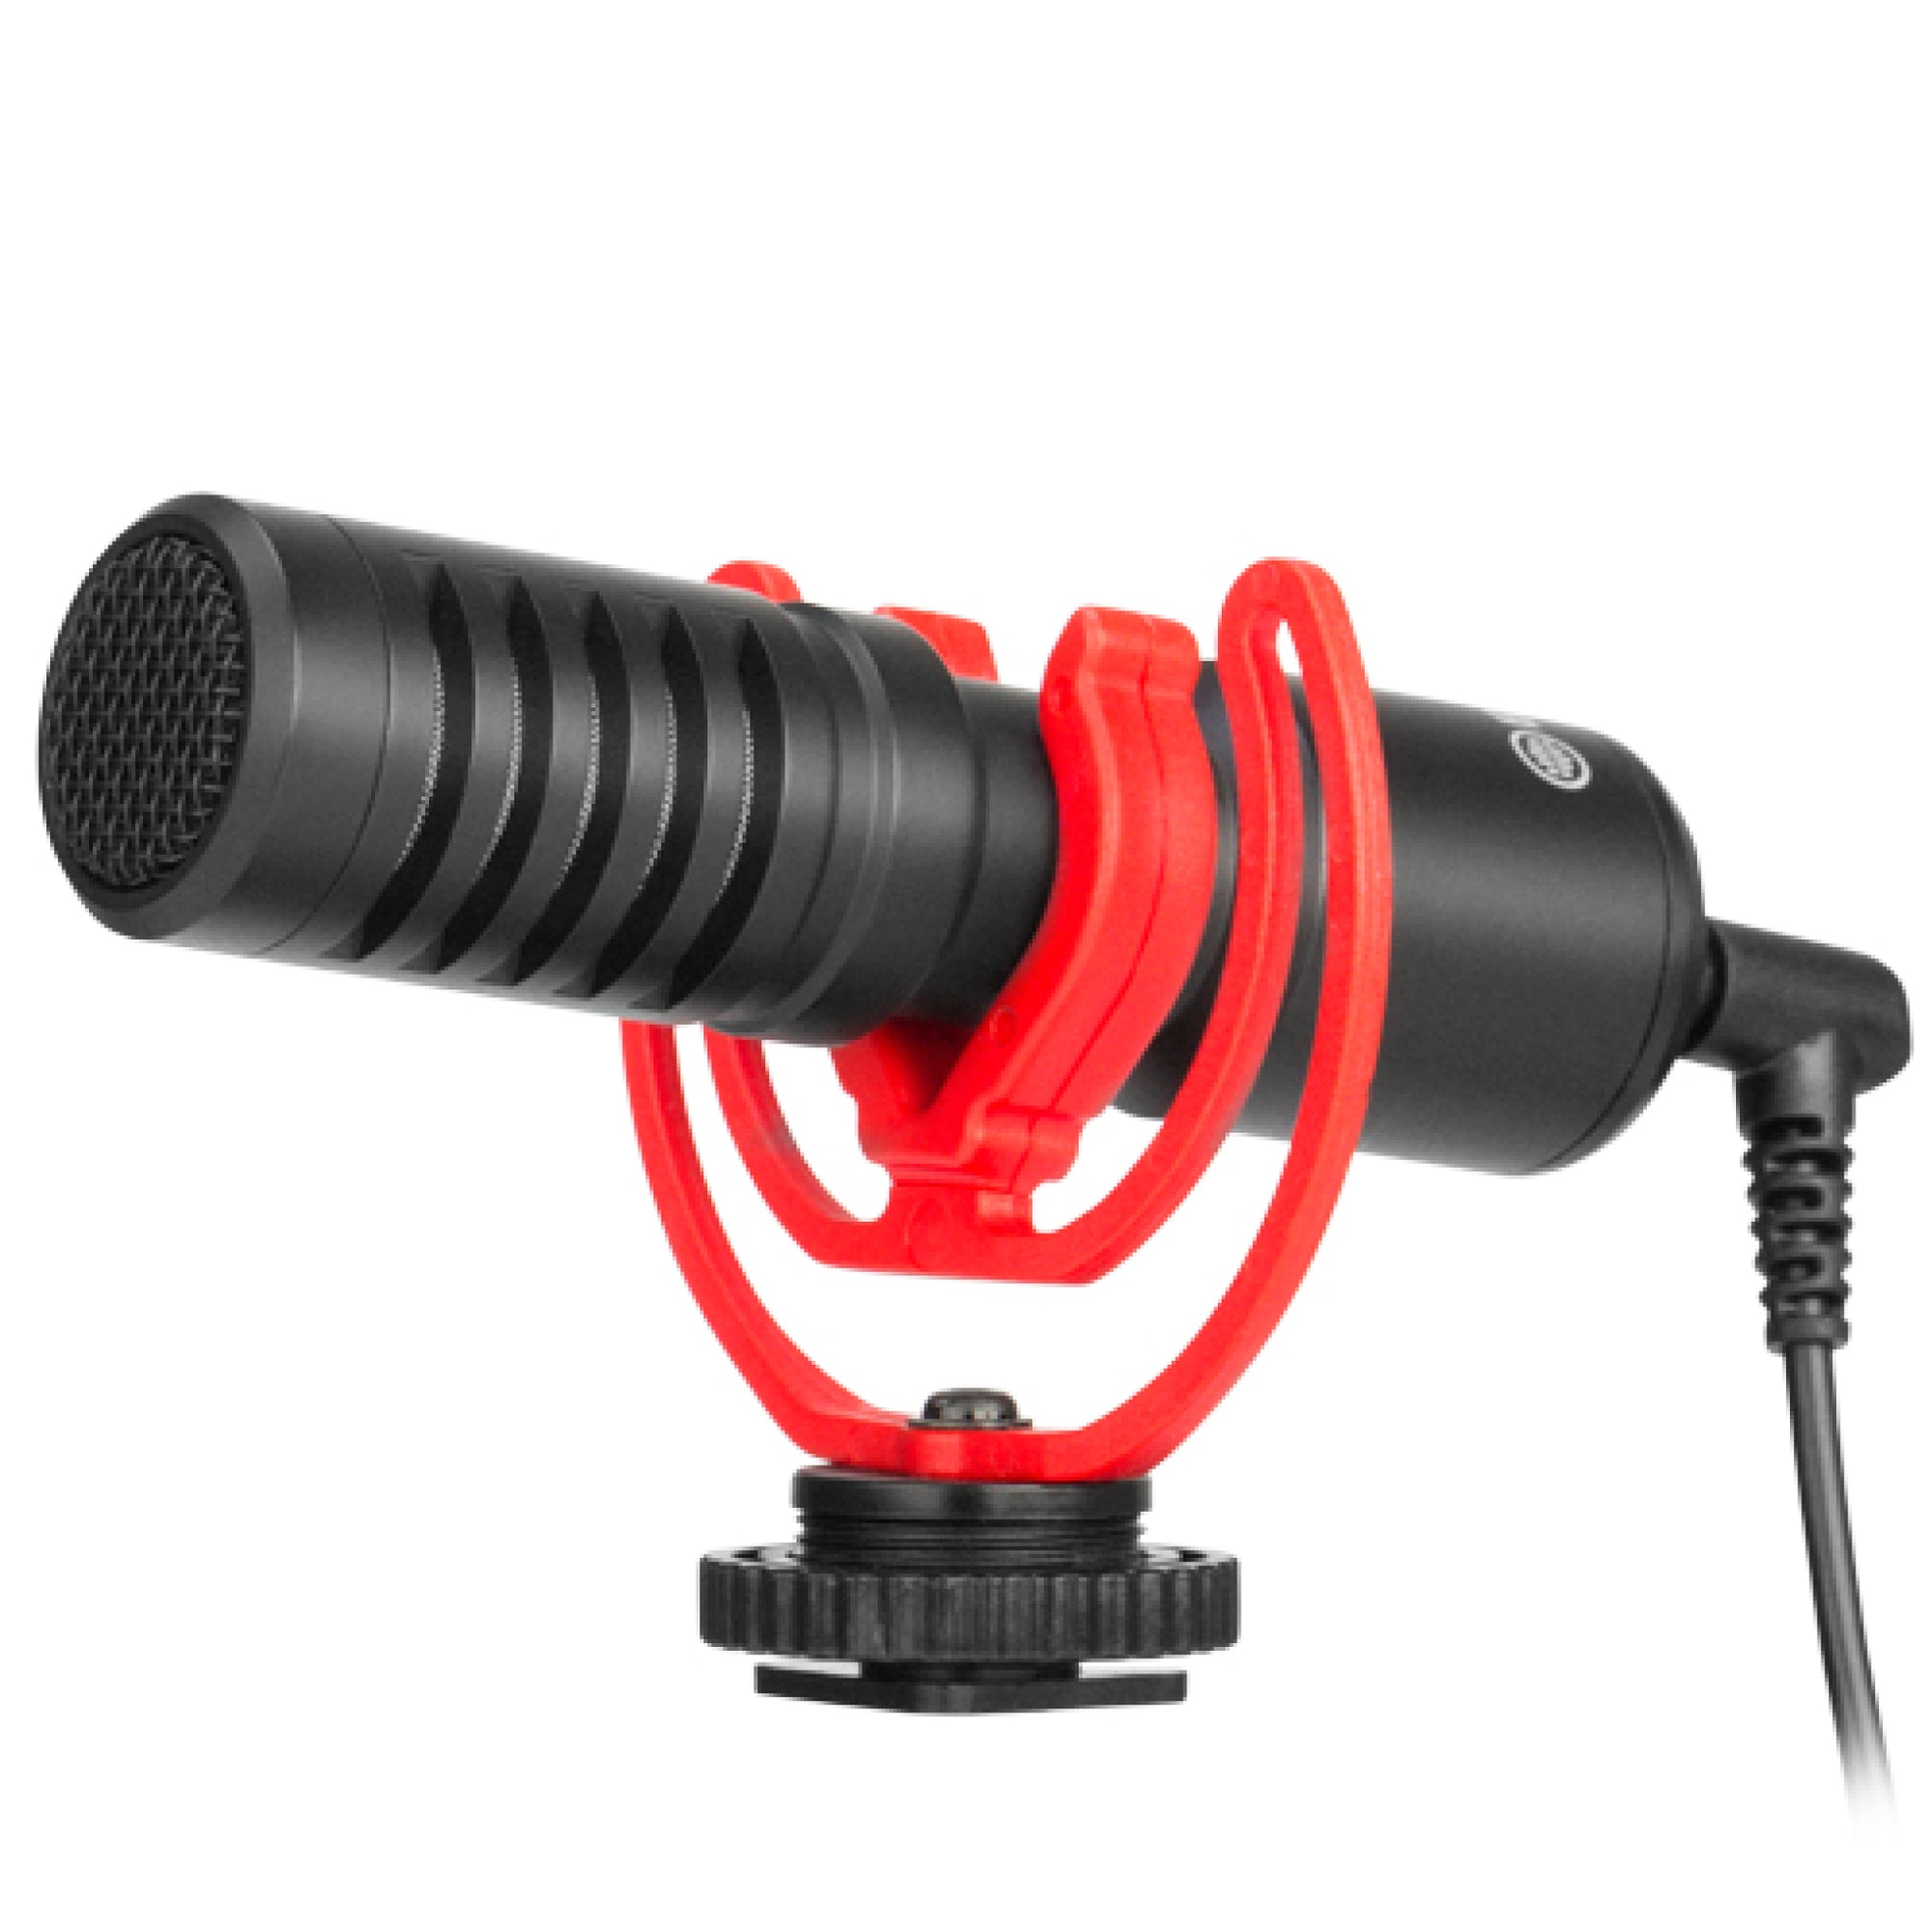 BOYA BY-MM1+ Super-cardioid Condenser Shotgun Microphone - Gears For Ears